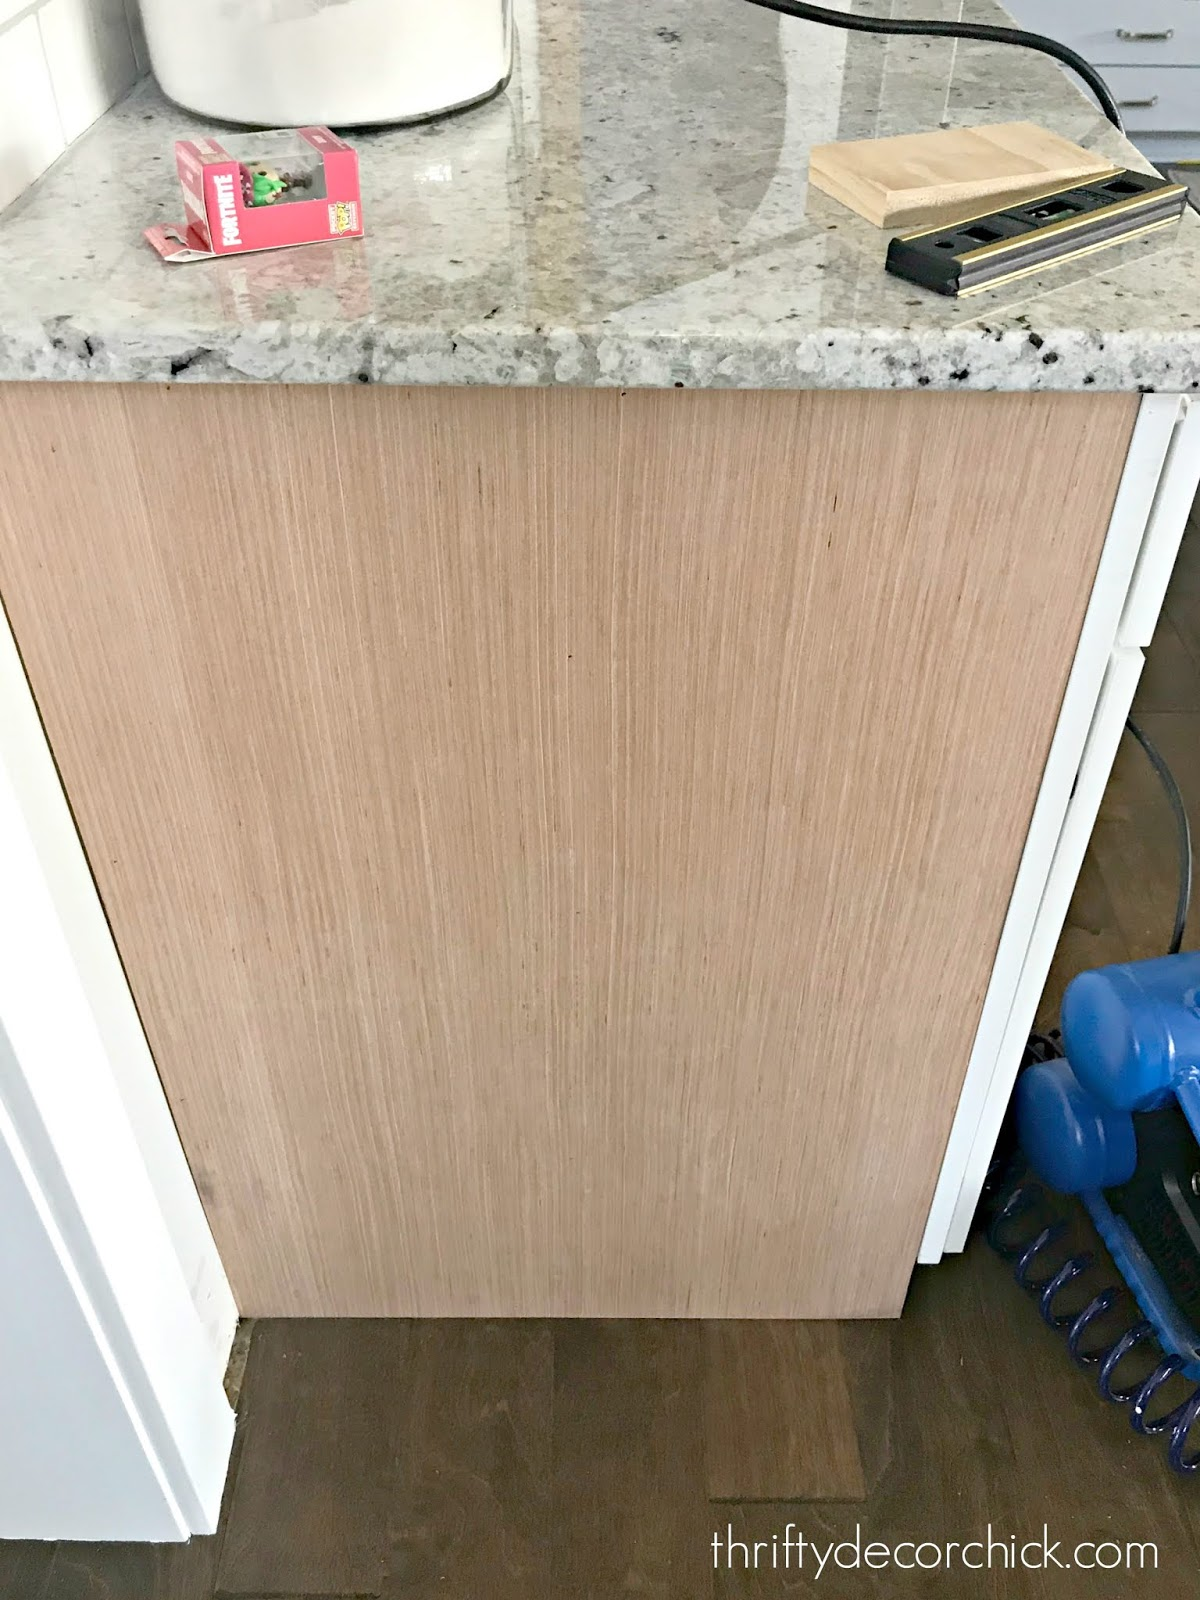 How To Upgrade The End Of Builder Grade Cabinets Thrifty Decor Chick Thrifty Diy Decor And Organizing